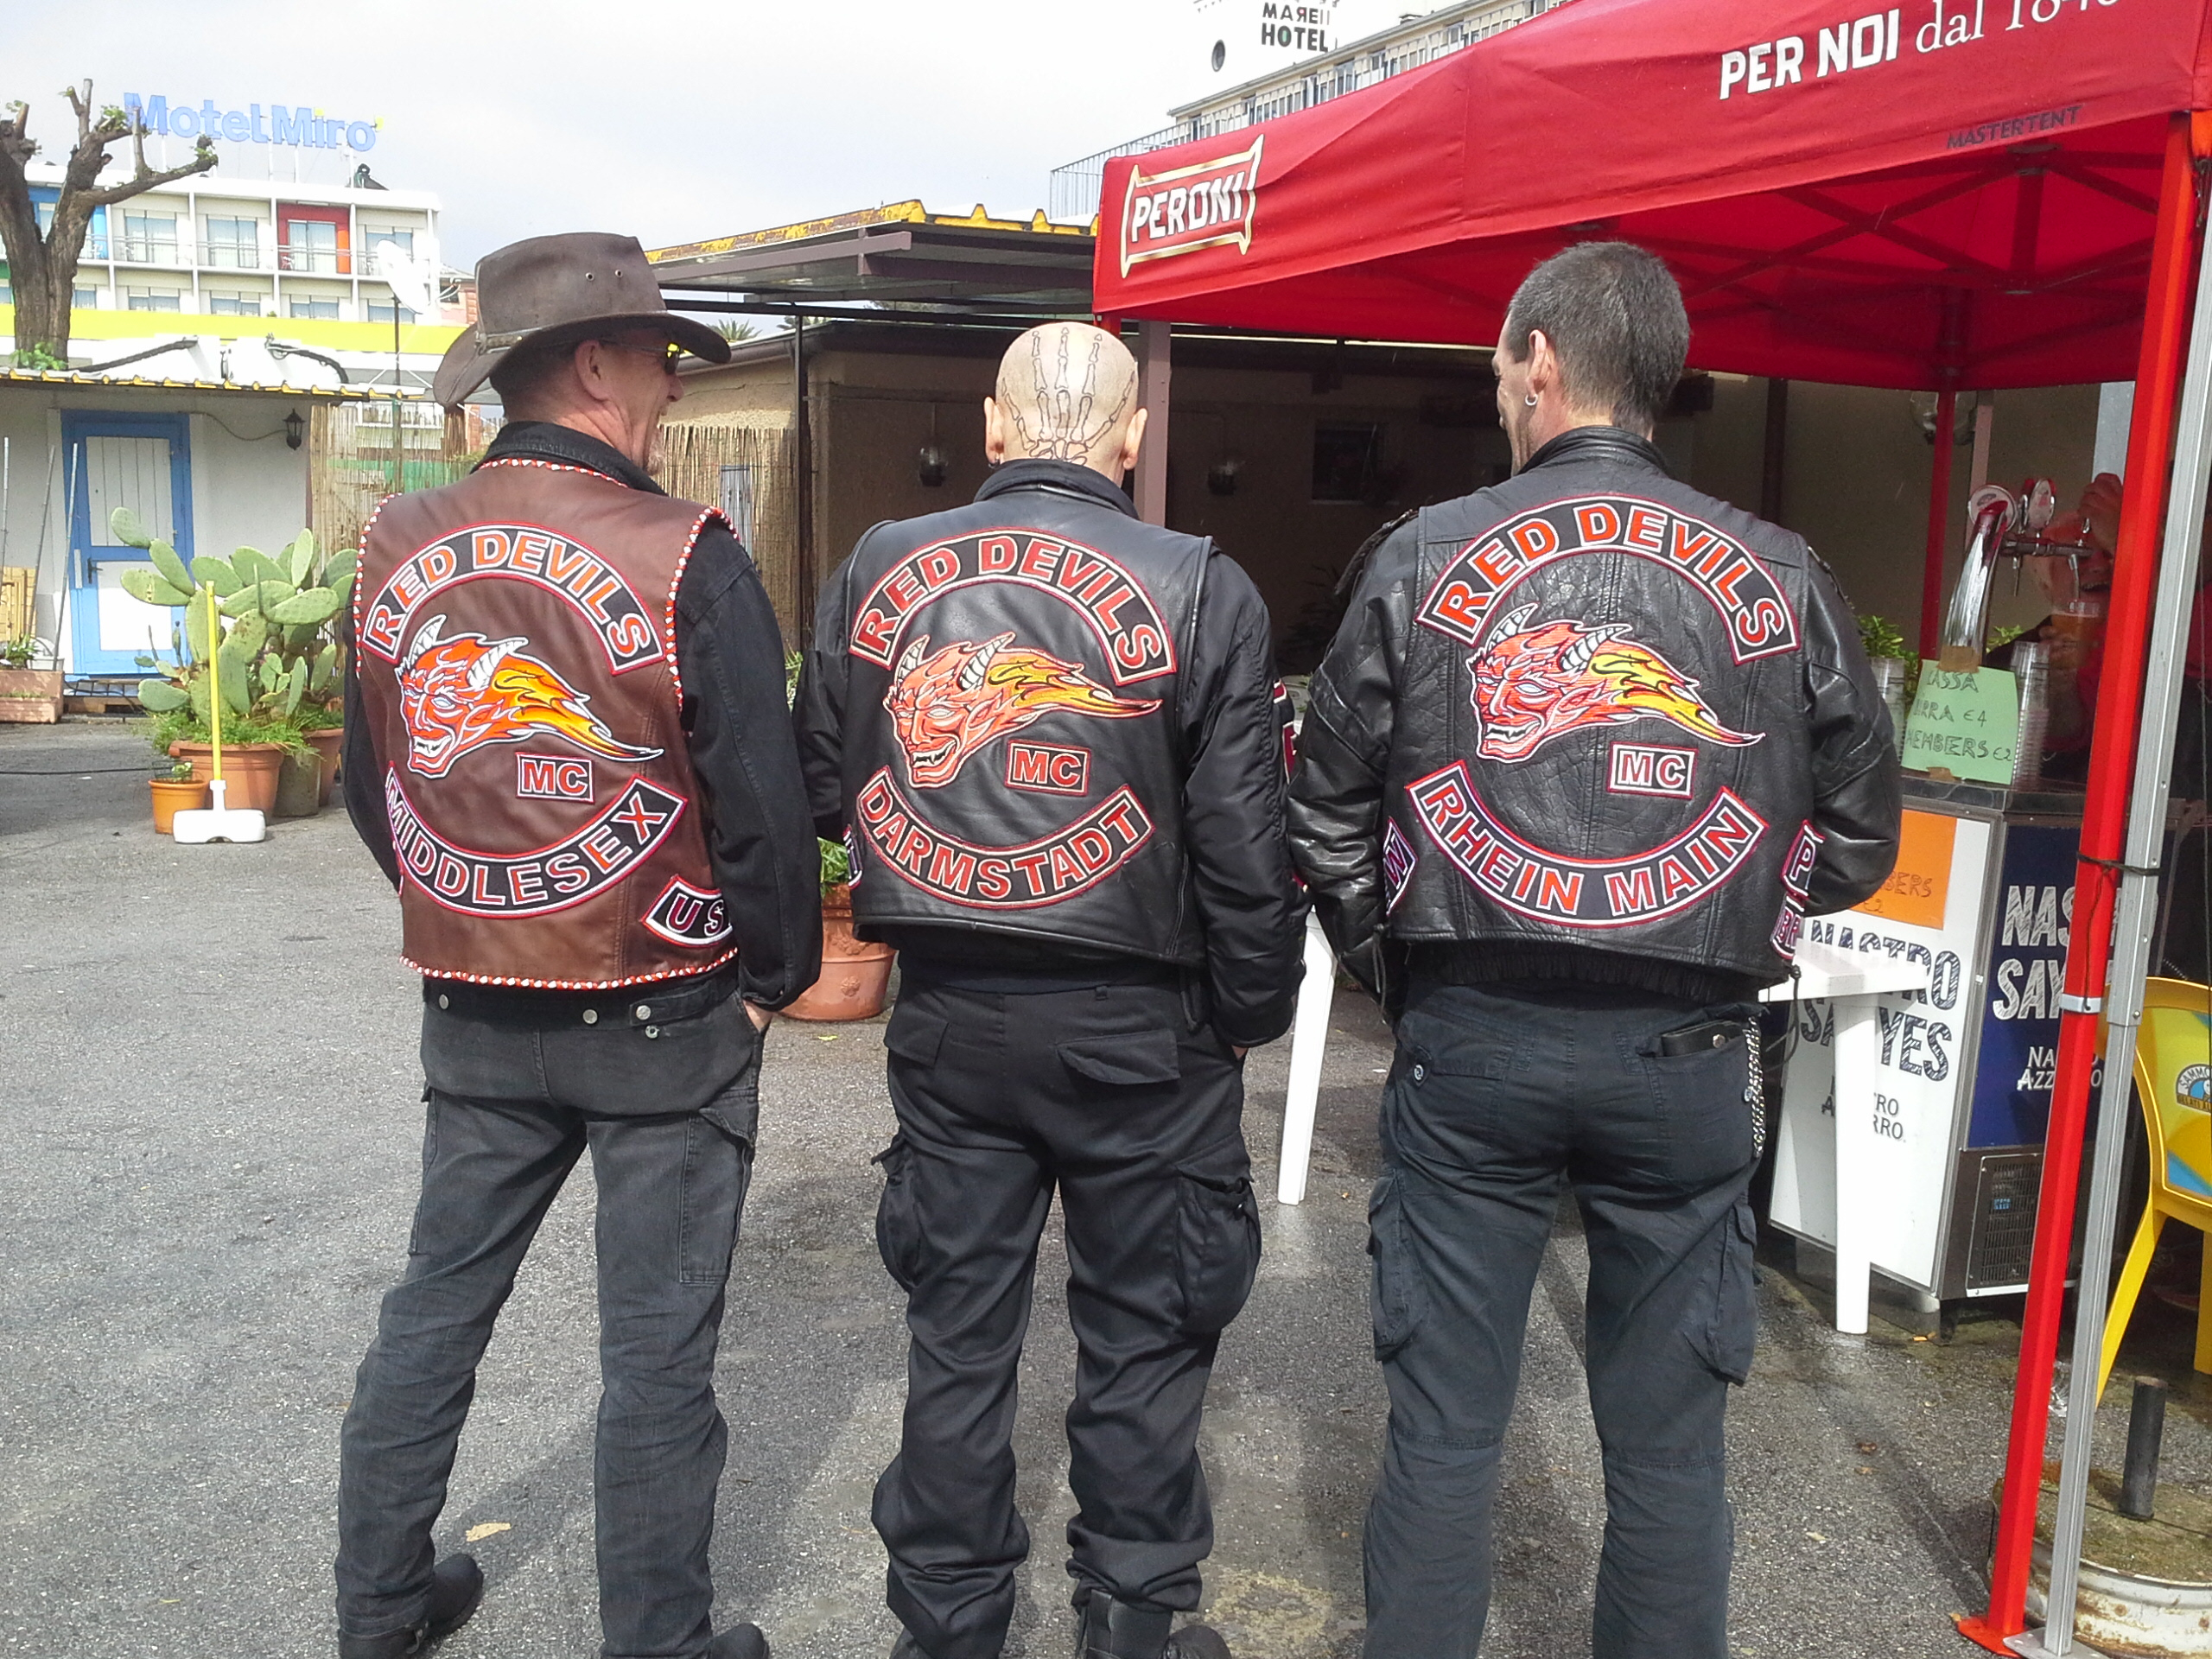 Red devils mcnorth carolina red devils mc middlesex usa for pinterest